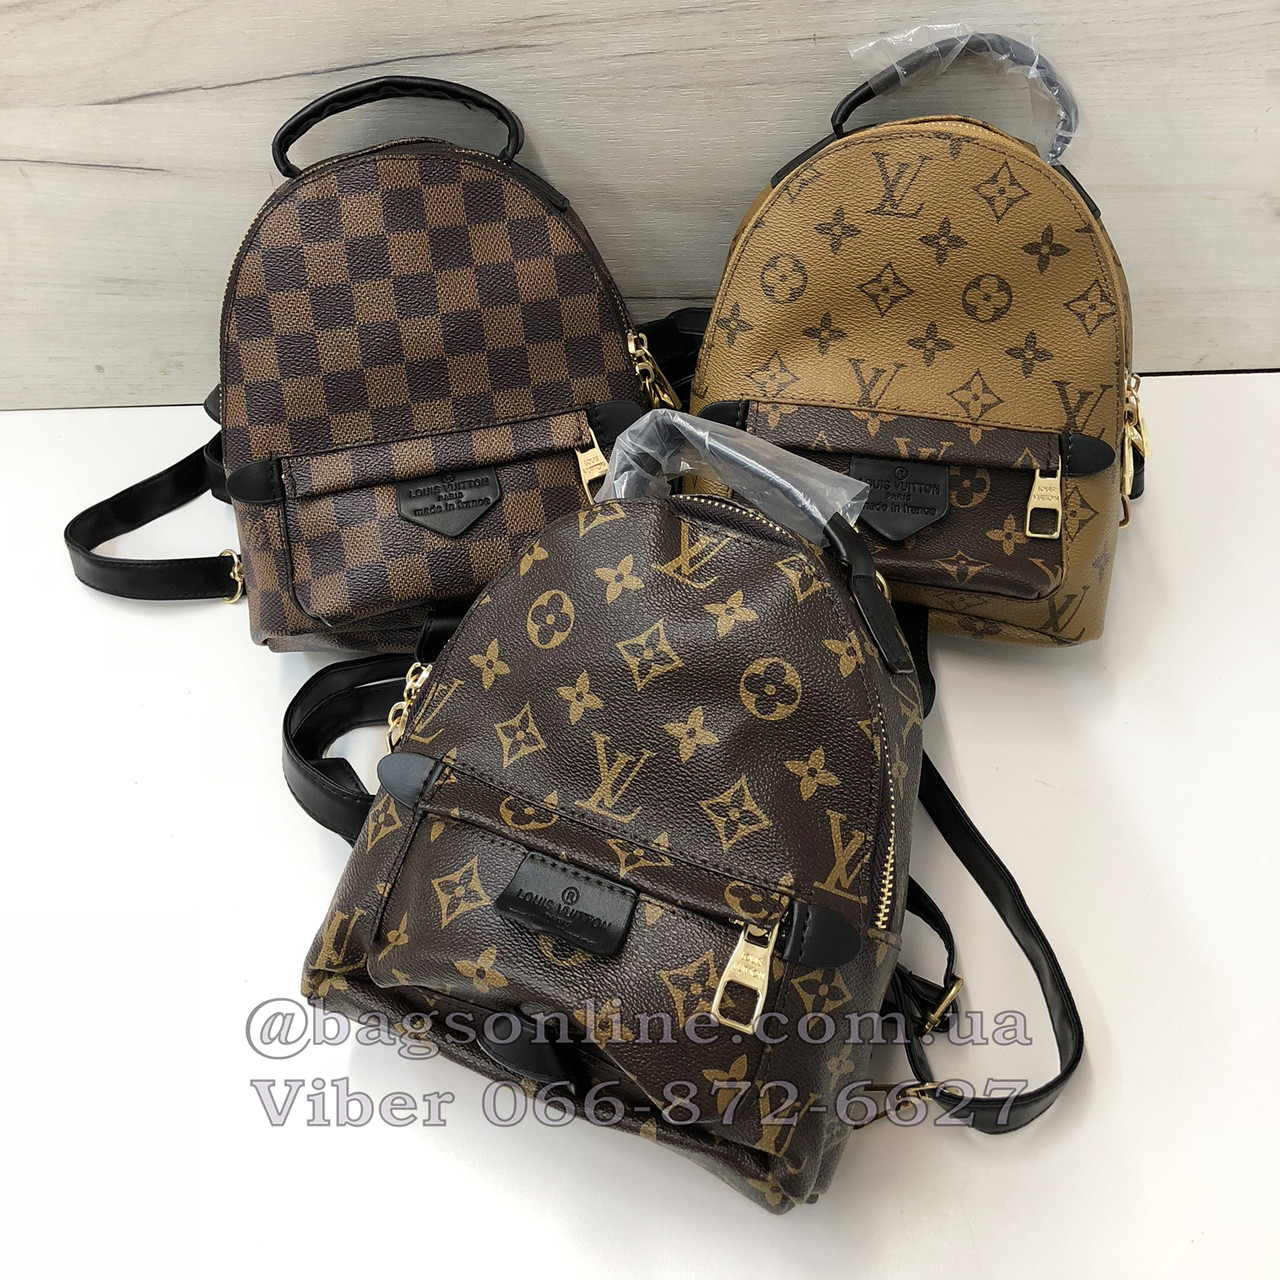 d679c2a908ba Мини портфель Louis Vuitton | рюкзак луи виттон | lv лв квадрат Коричневый